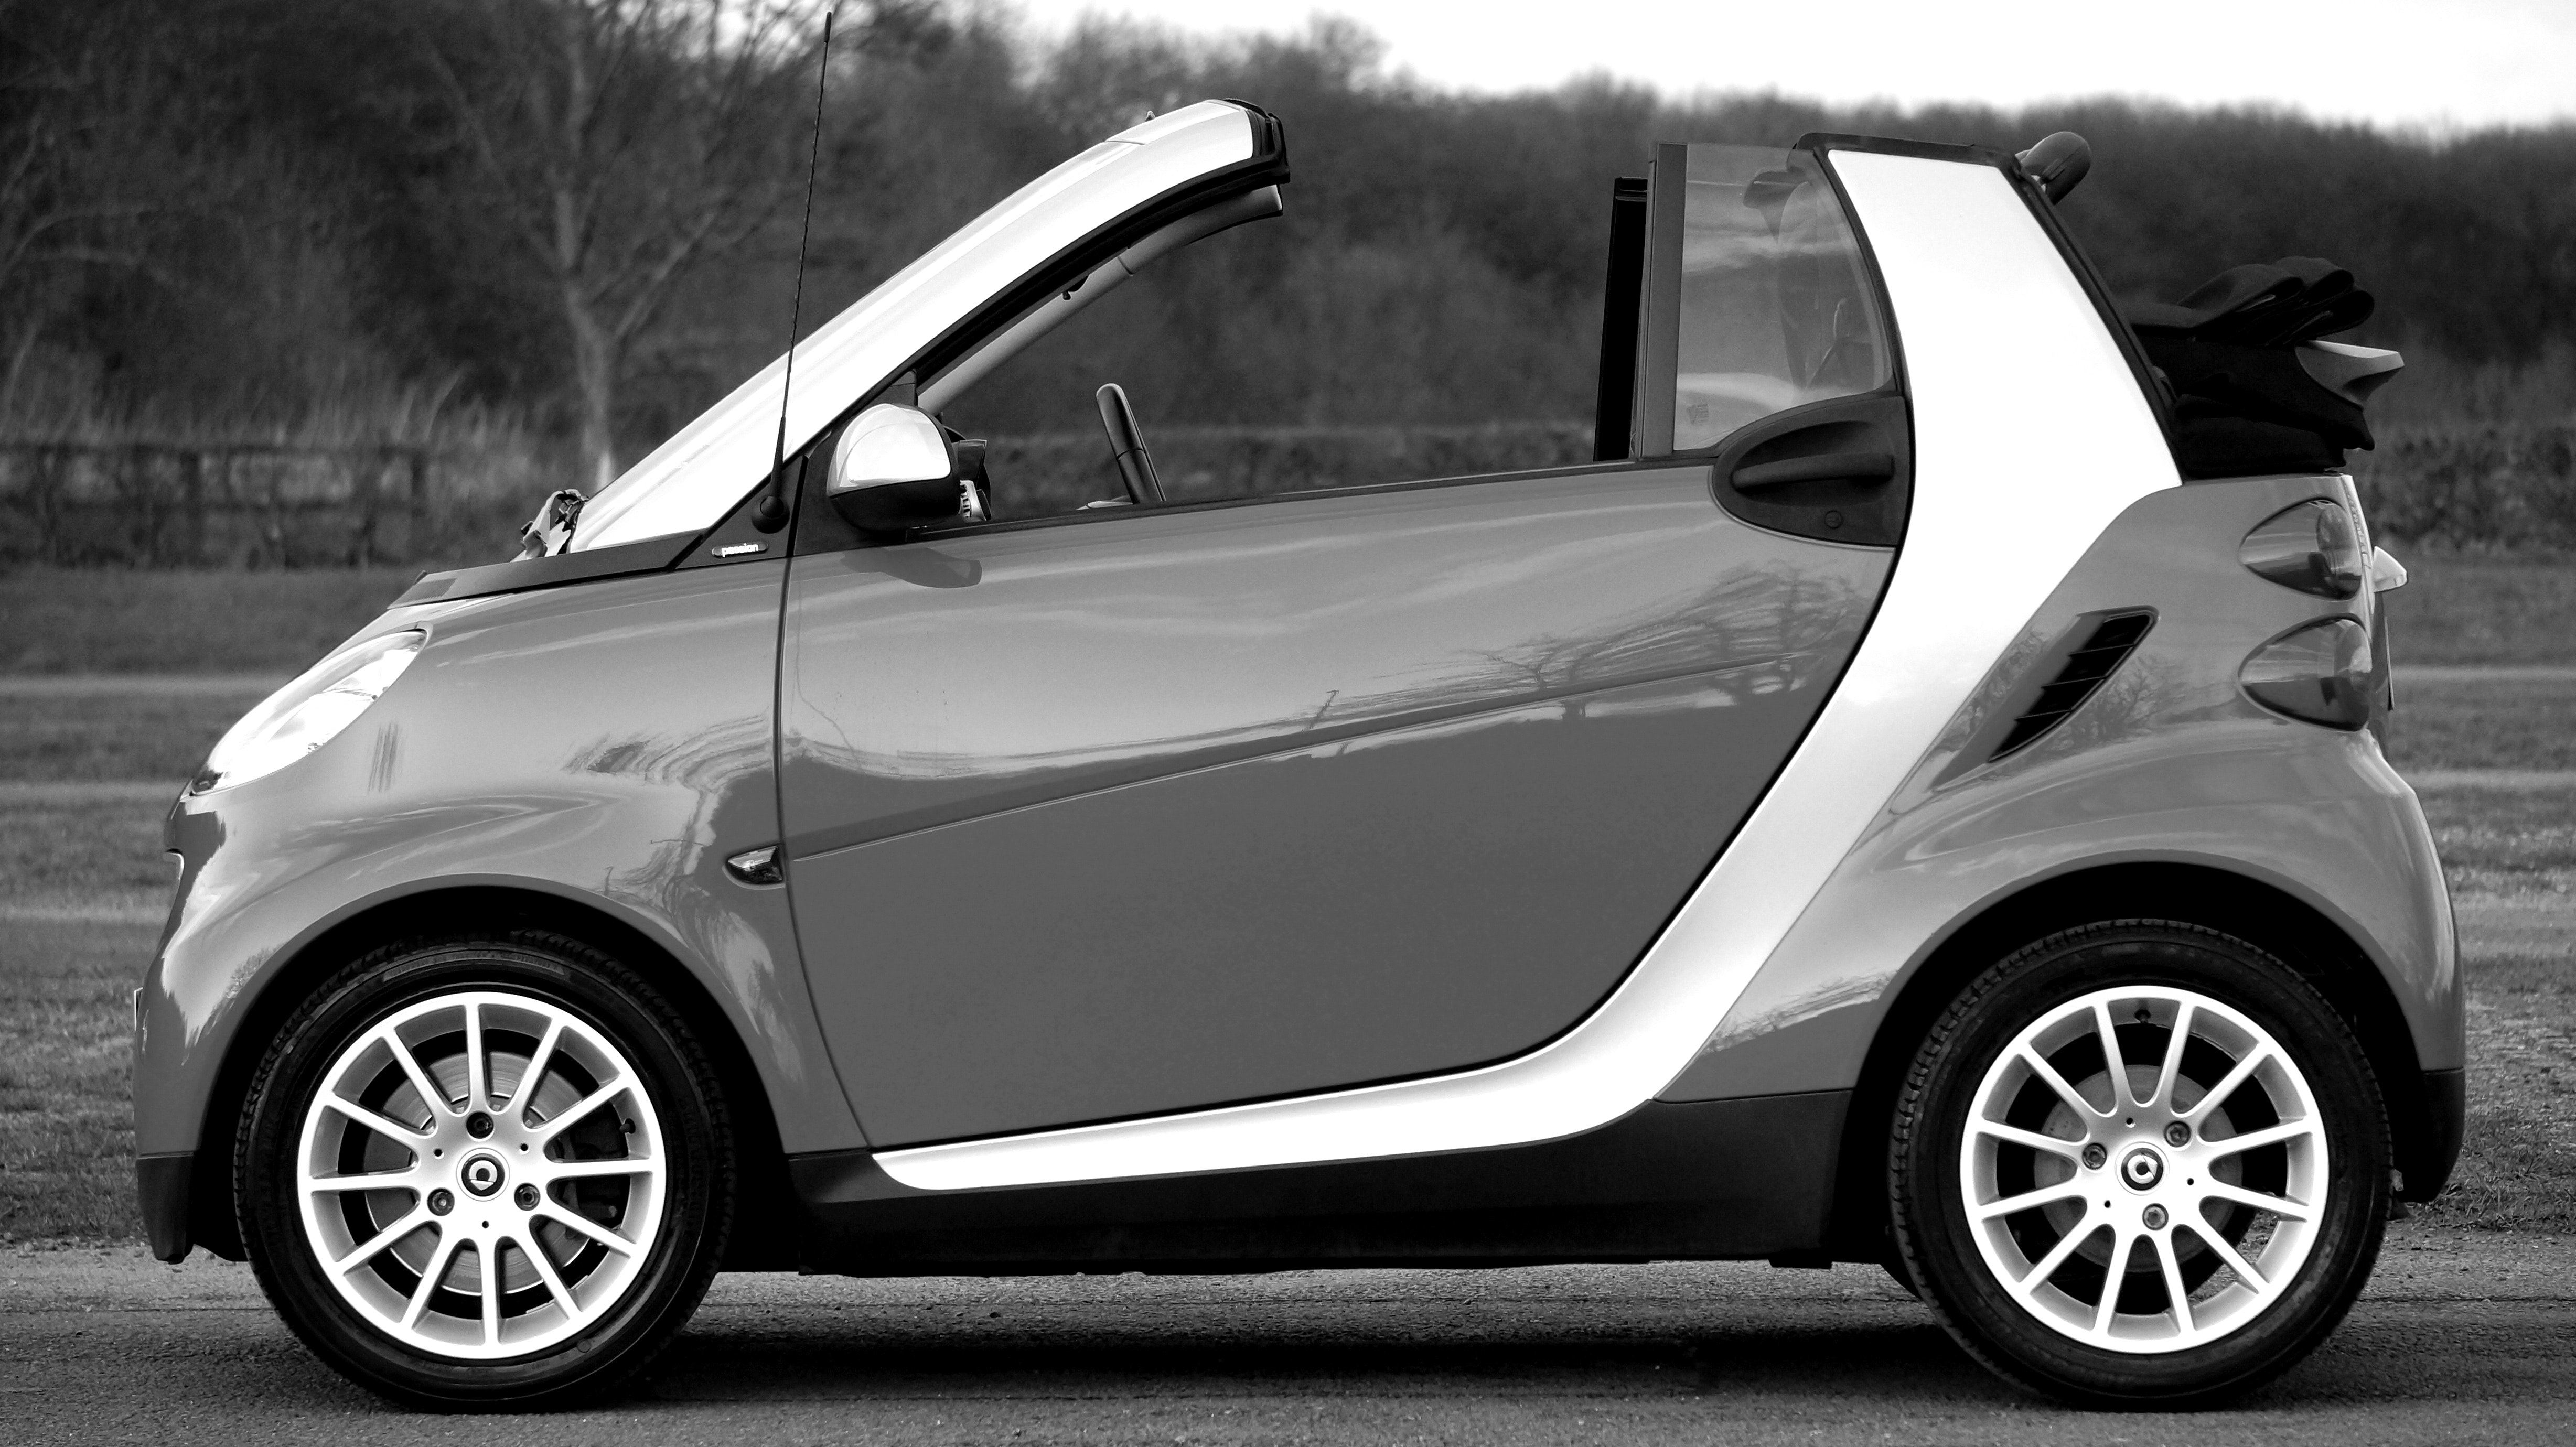 Smart Fortwo on Park, Auto, Reflection, Vehicle, Transportation system, HQ Photo